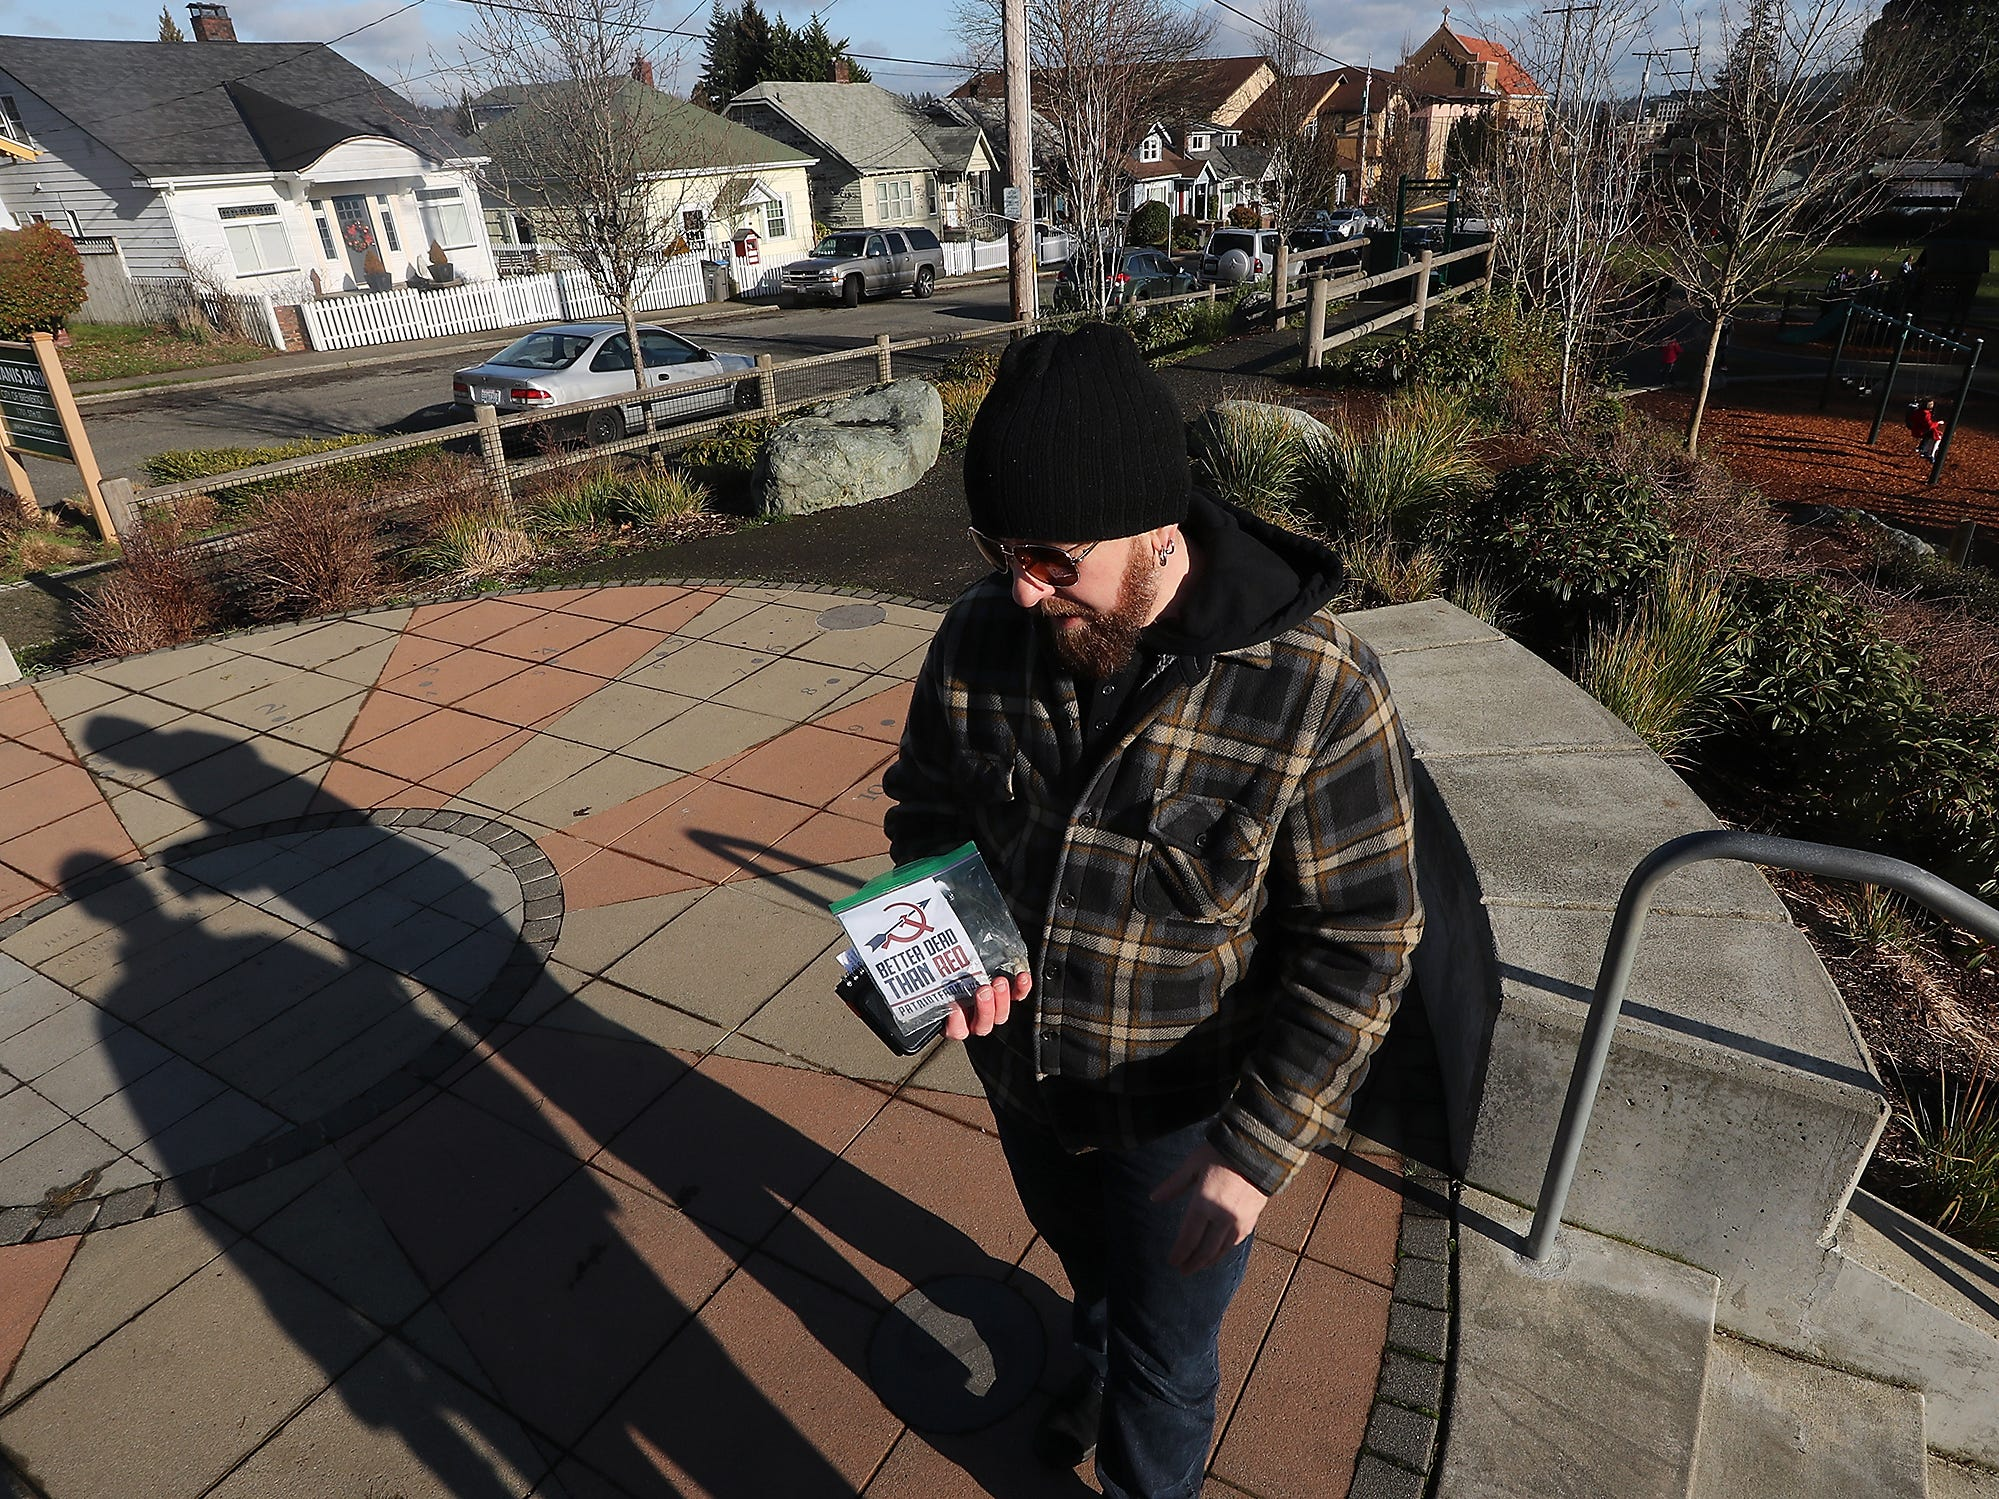 Airen Lydick holds one of the flyers that he collected that was tossed into yards of those living in the Union Hill neighborhood in Bremerton, on Monday, January 7, 2019.